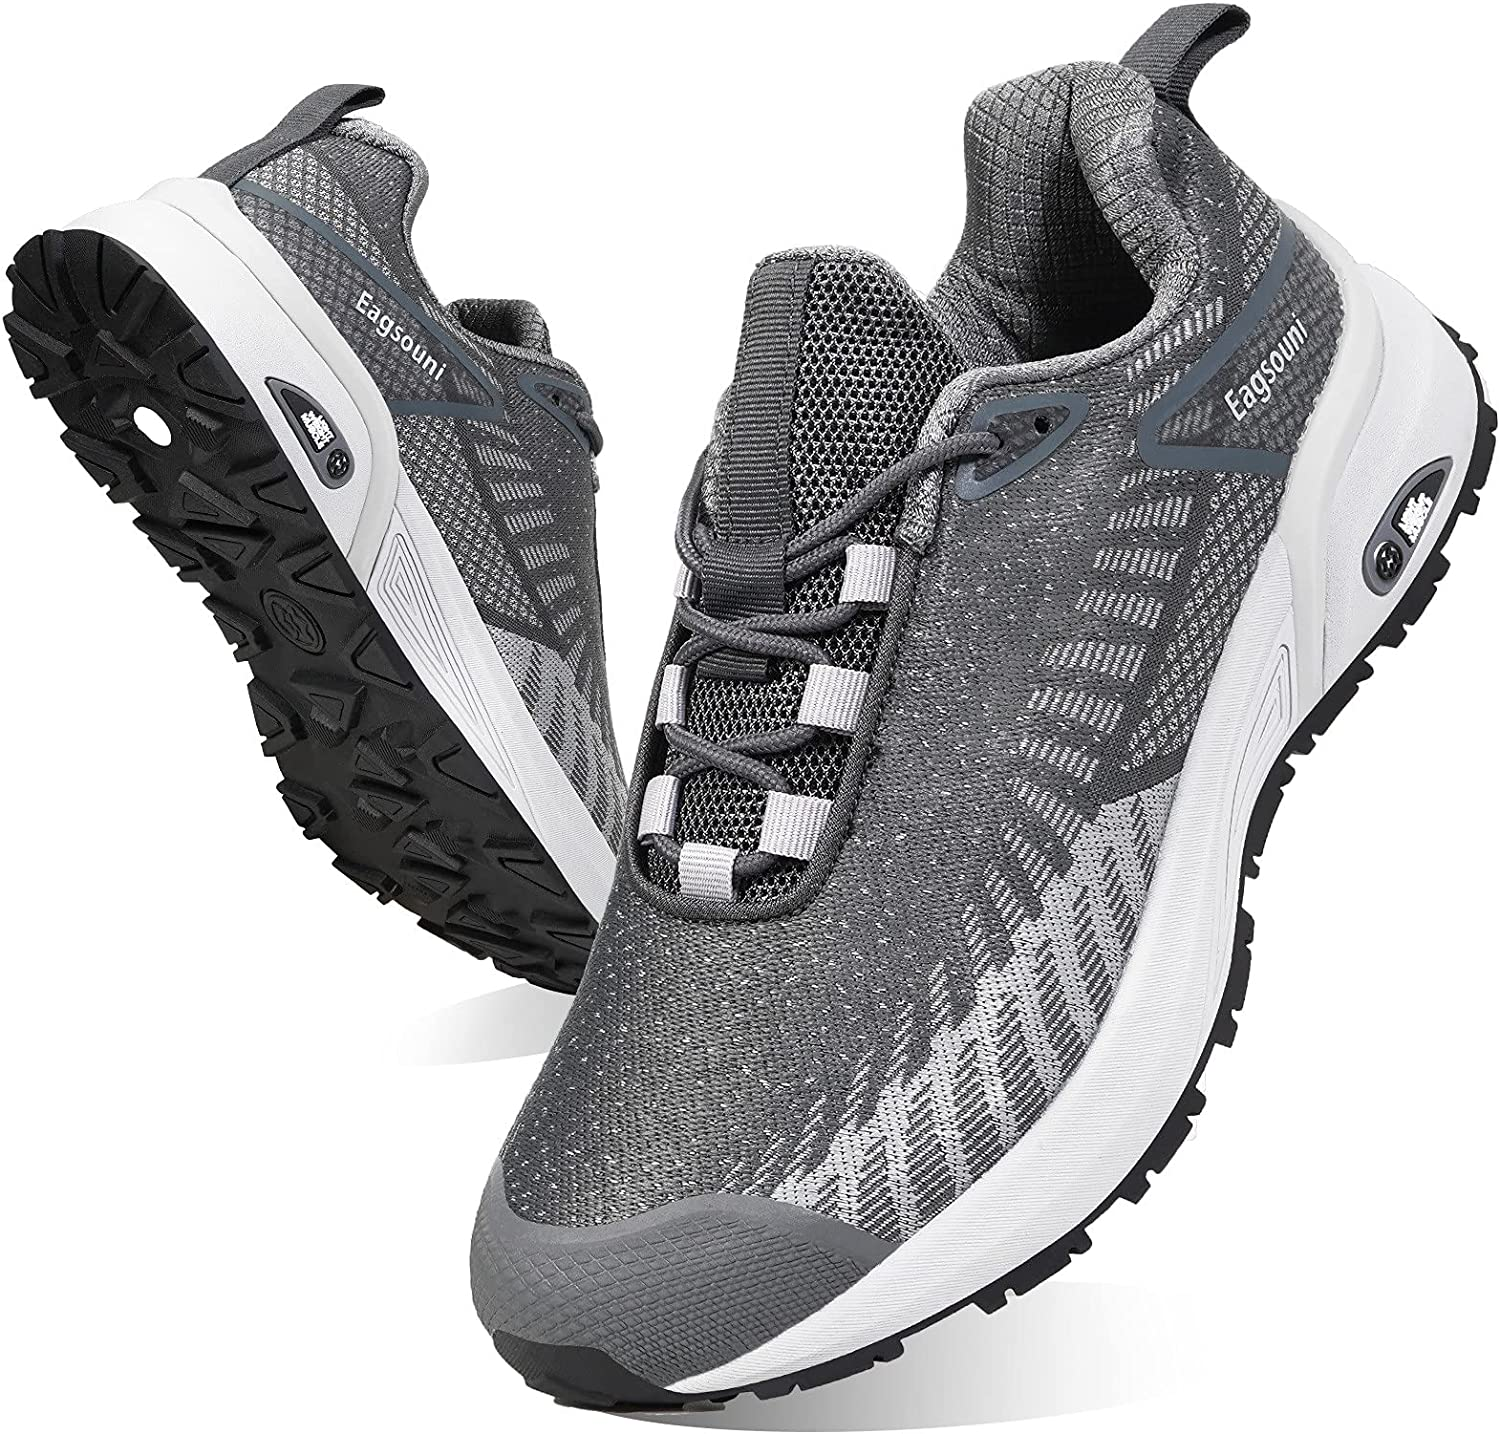 Eagsouni Men's Running Shoes Lightweight Non Slip Sneakers Women's Breathable Walking Fashion Athletic Gym Tennis Shoes